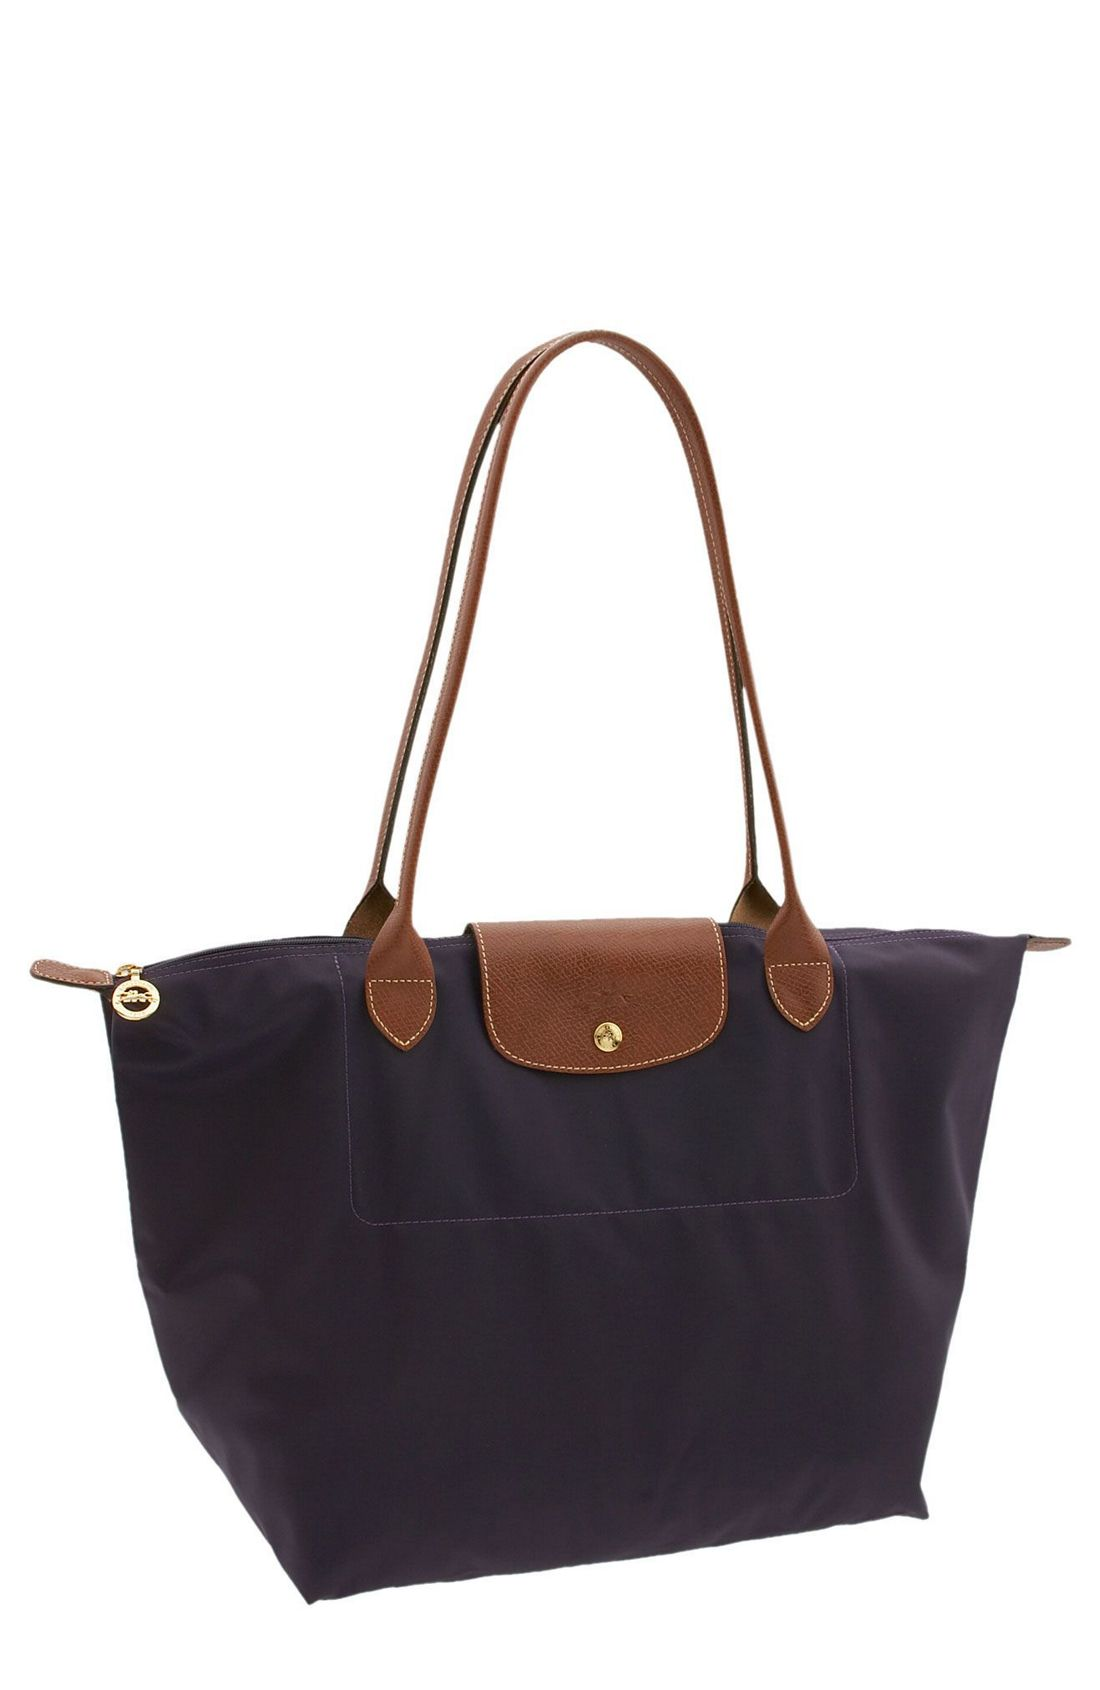 longchamp 39 large le pliage 39 tote in blue dark purple bilberry lyst. Black Bedroom Furniture Sets. Home Design Ideas